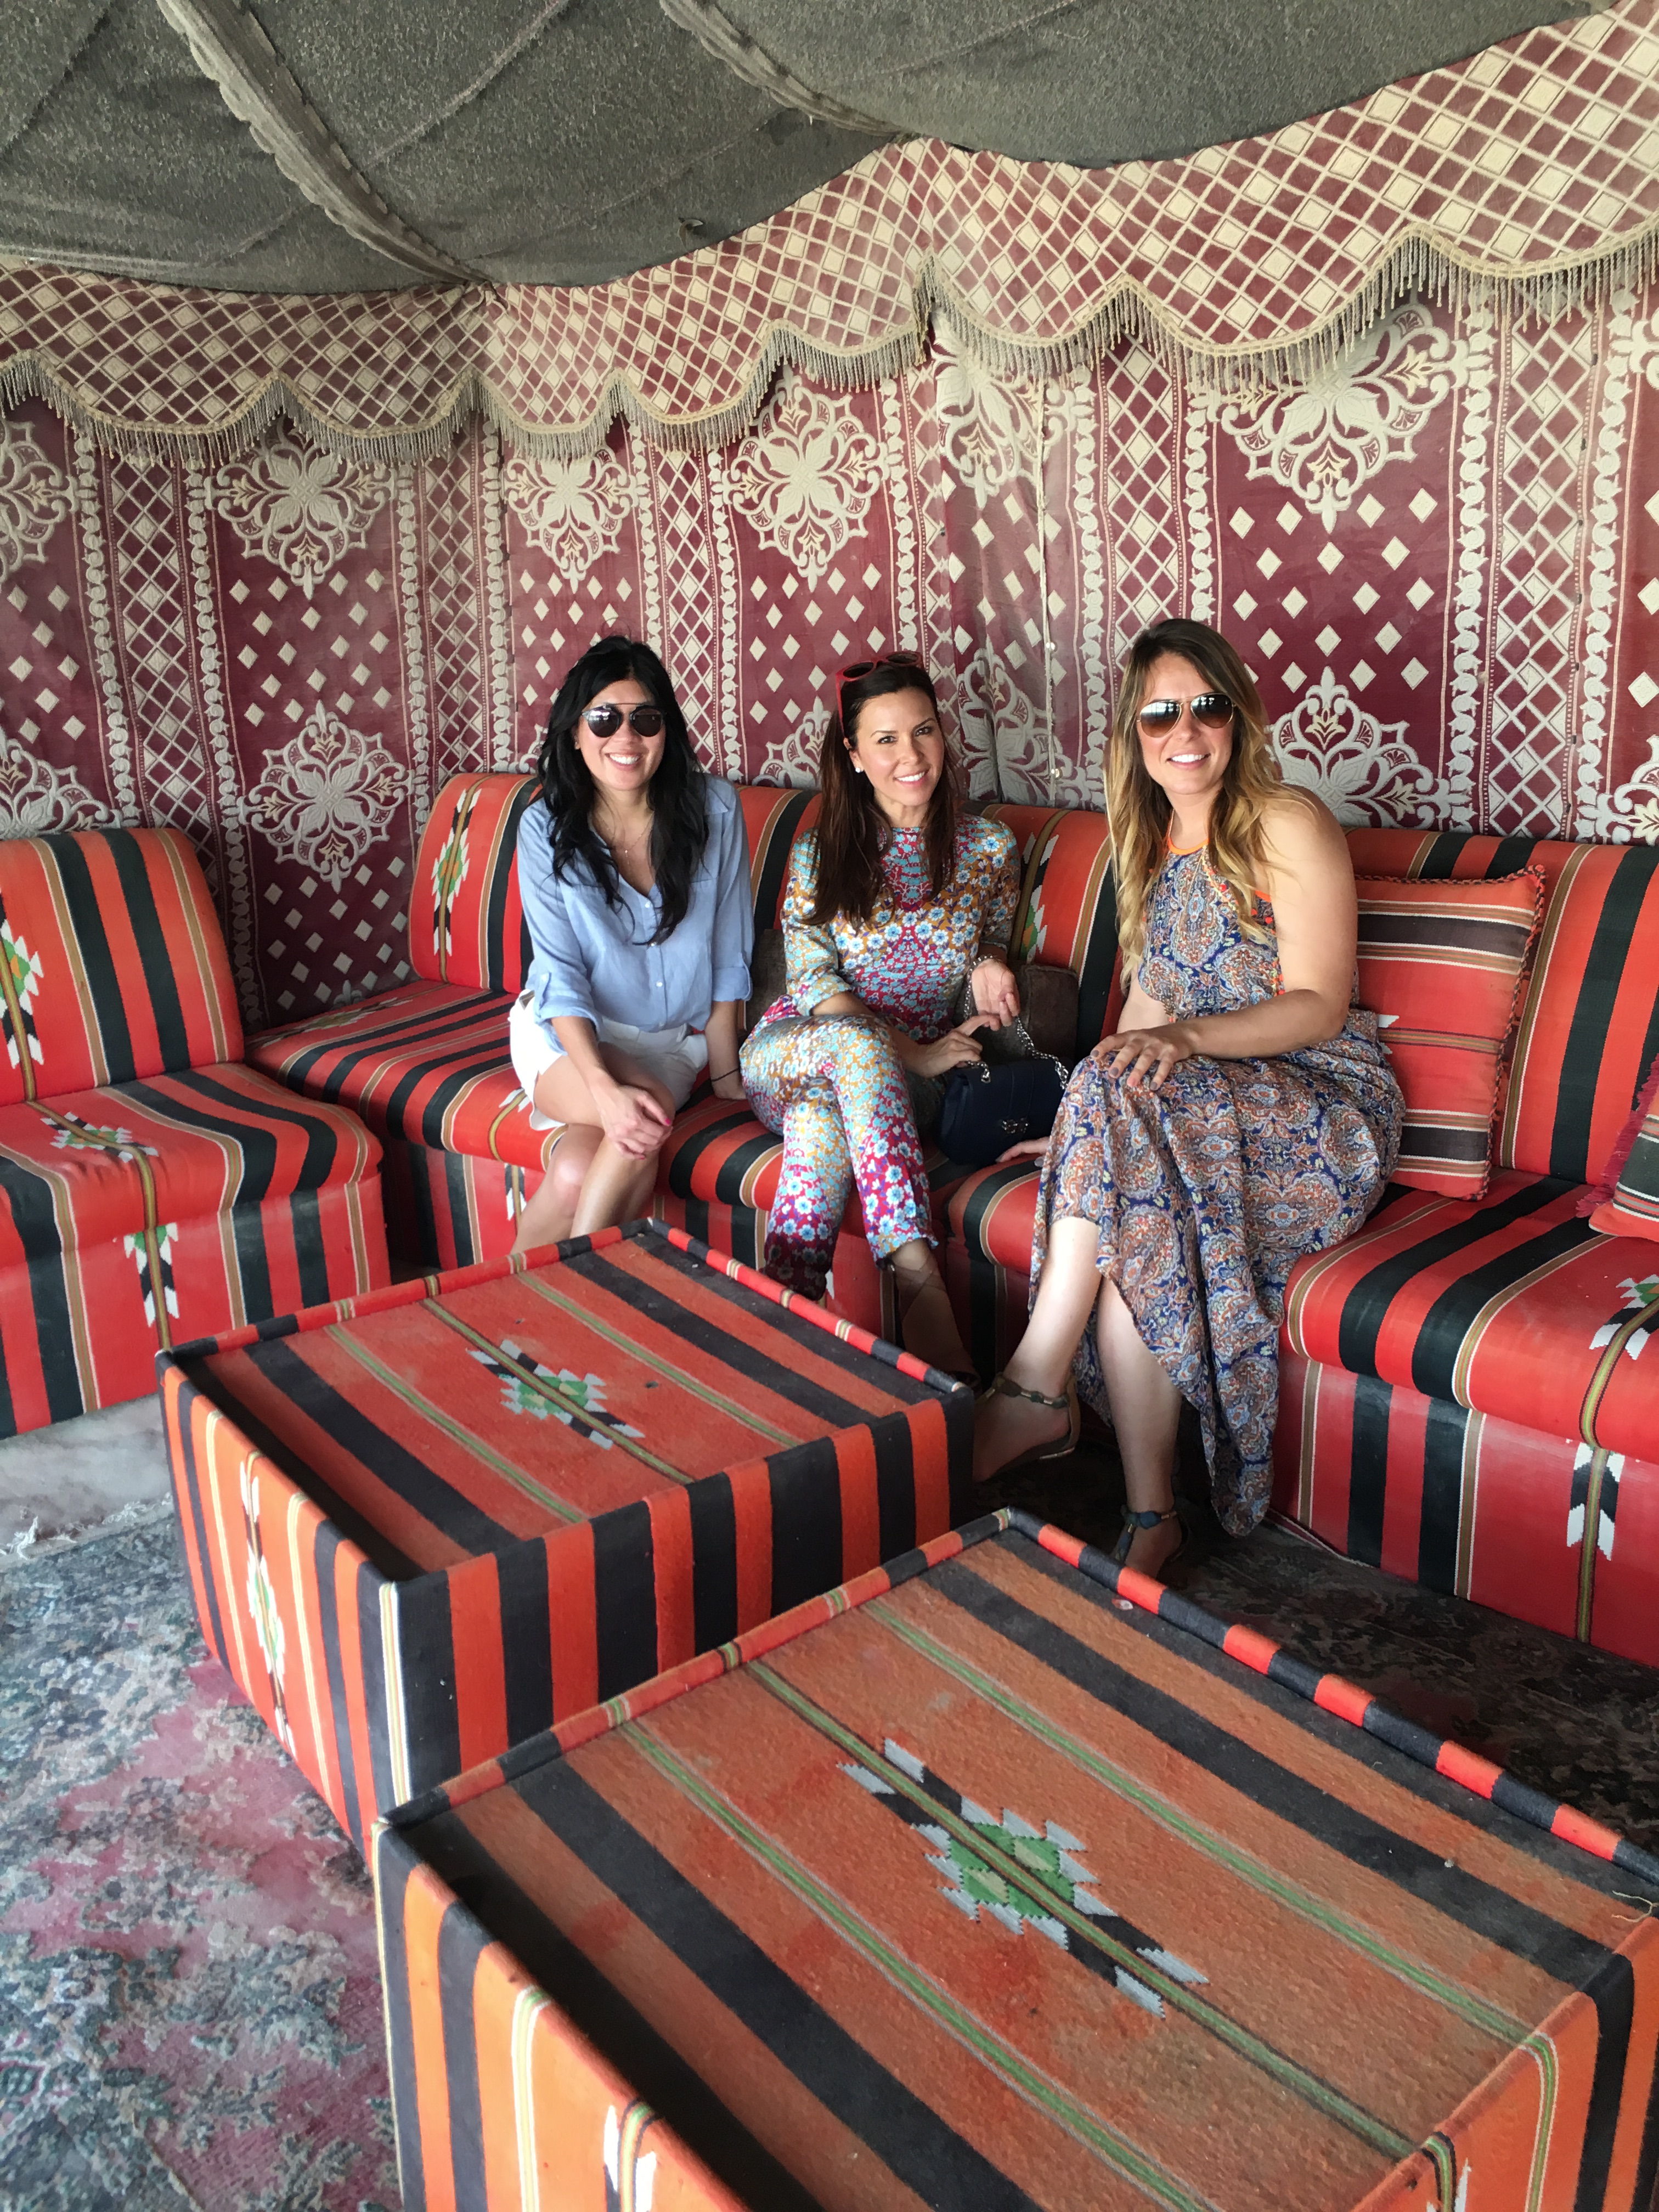 Monique Lhuillier travel diary: Taking in the bright colors inside our tent